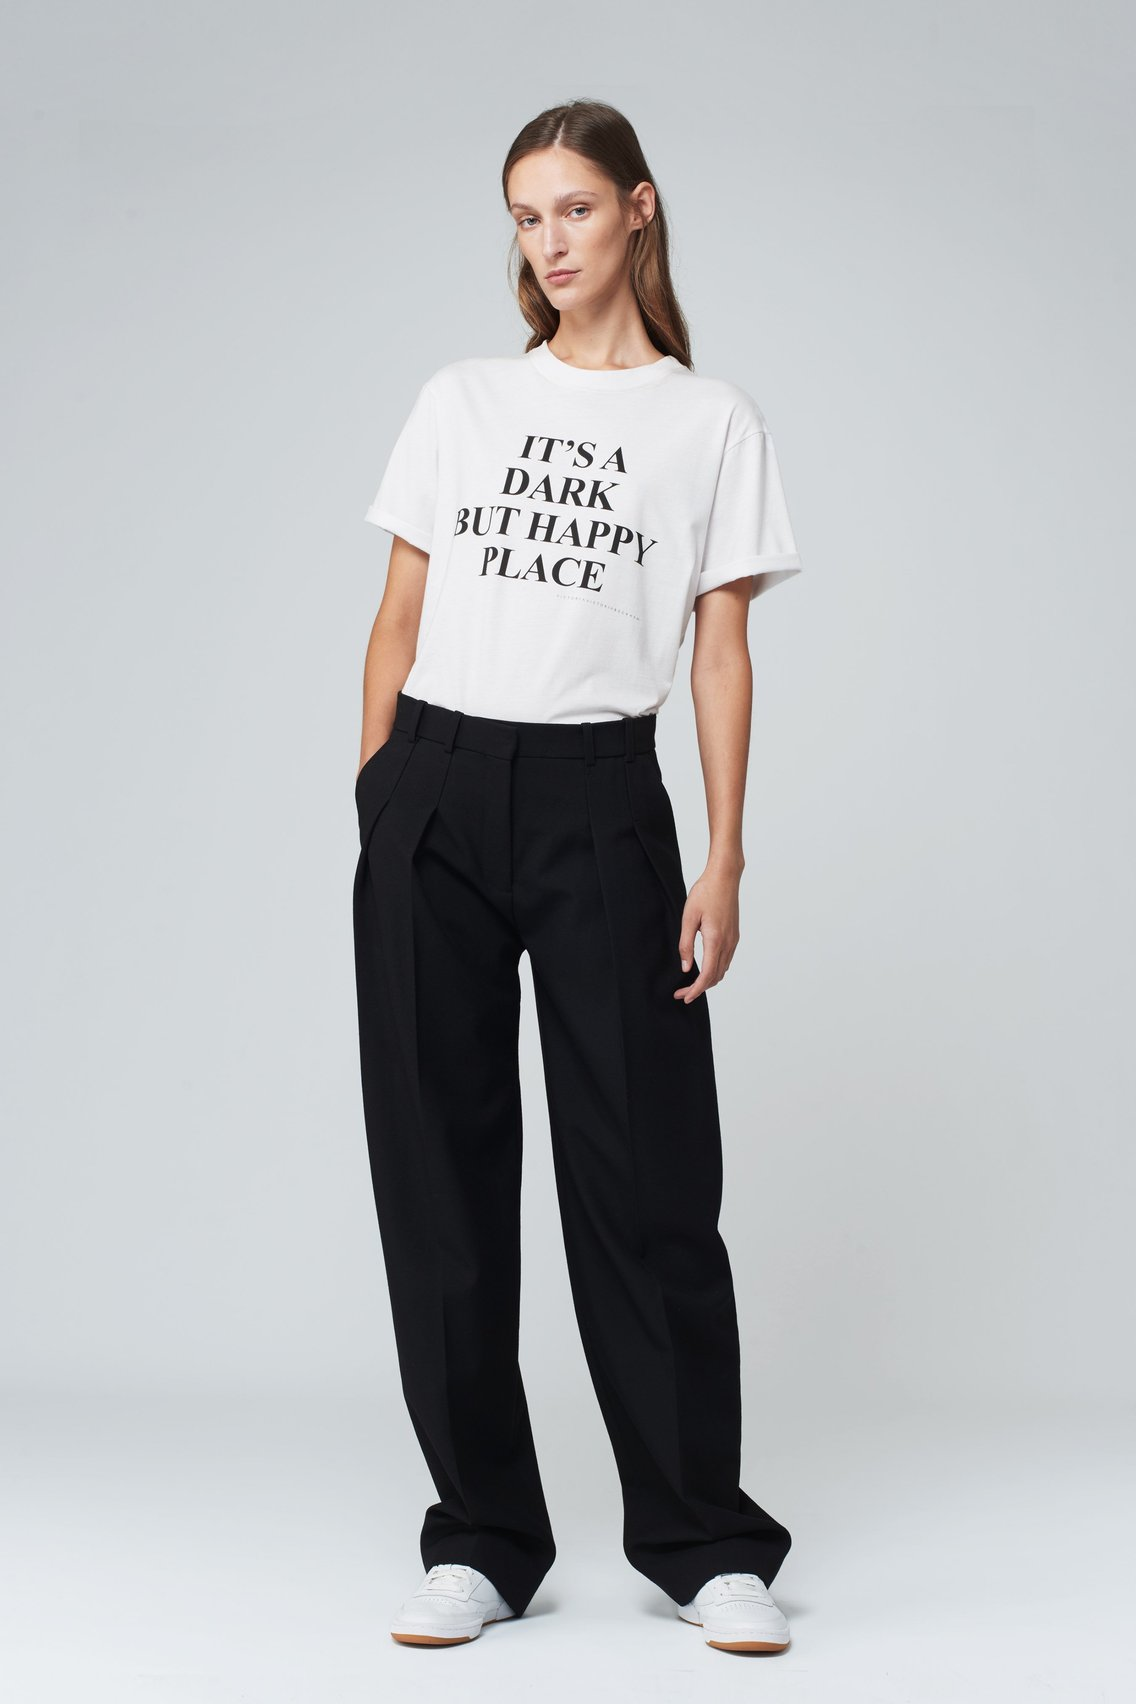 its_a_dark_but_happy_place_white_tee_1_1136x.jpg